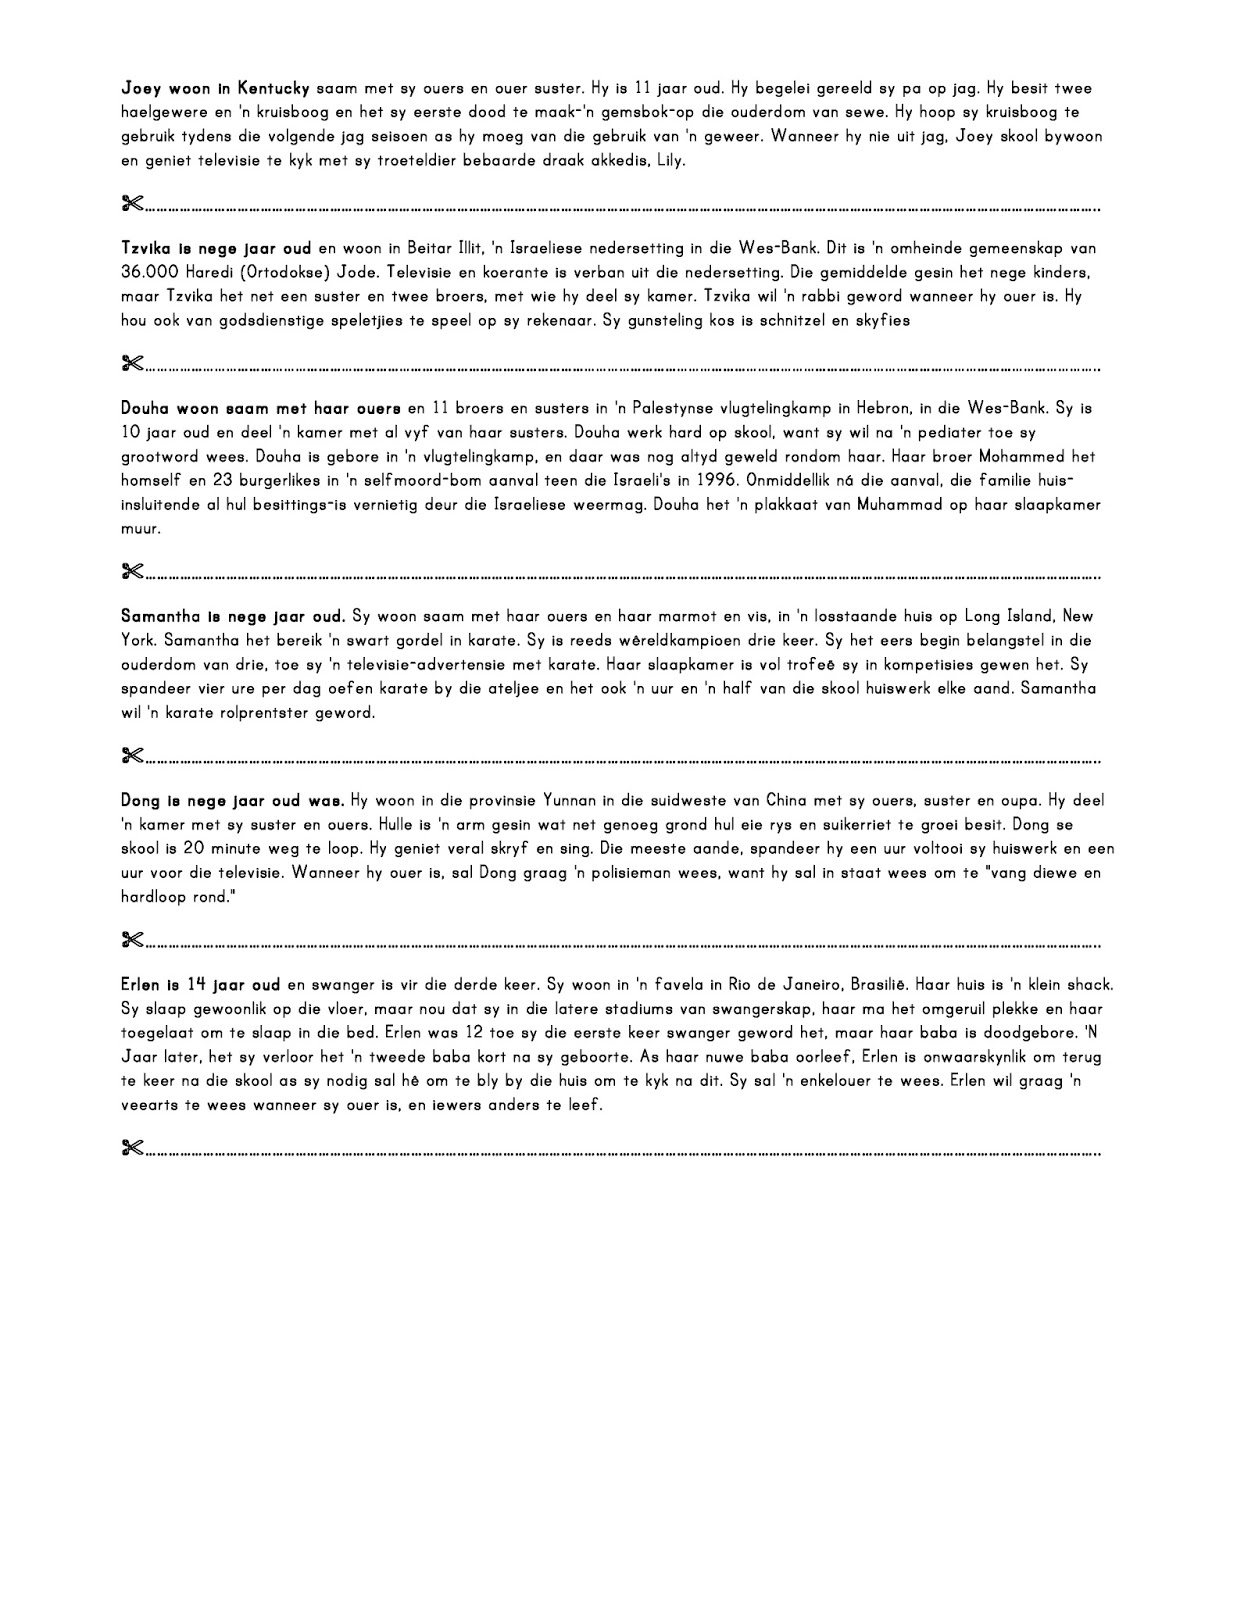 010 Fototext Page Jpg Human Trafficking Essay Rare Hook Questions Full